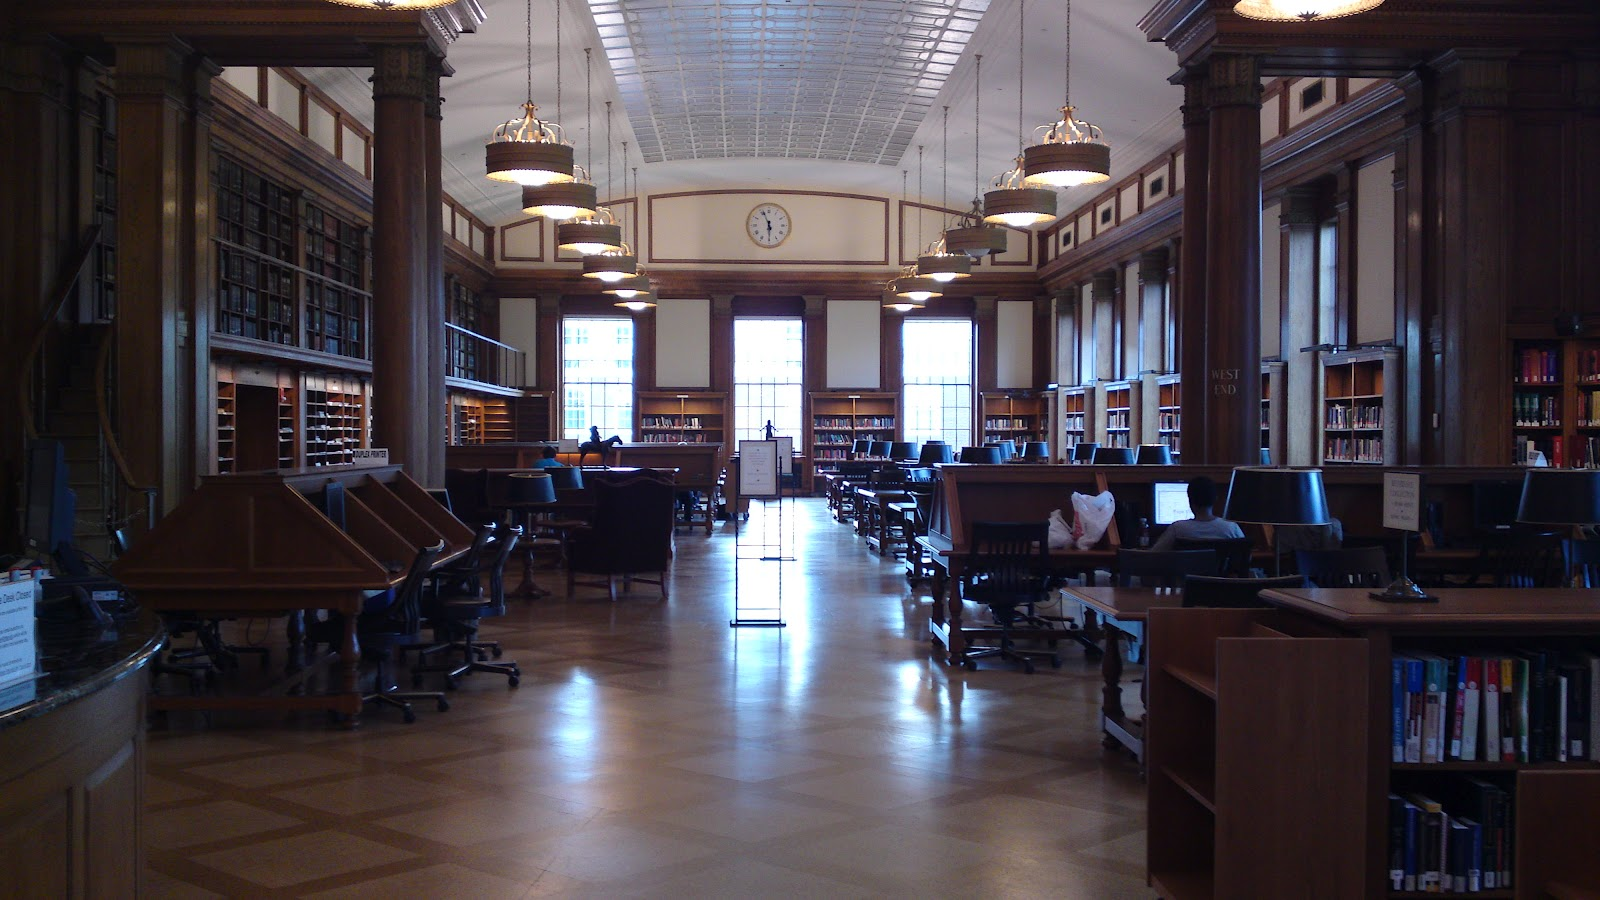 Case Studies   Virtual Business Library   Research Guides at New     Harvard Business School  Harvard University  Boston  USA